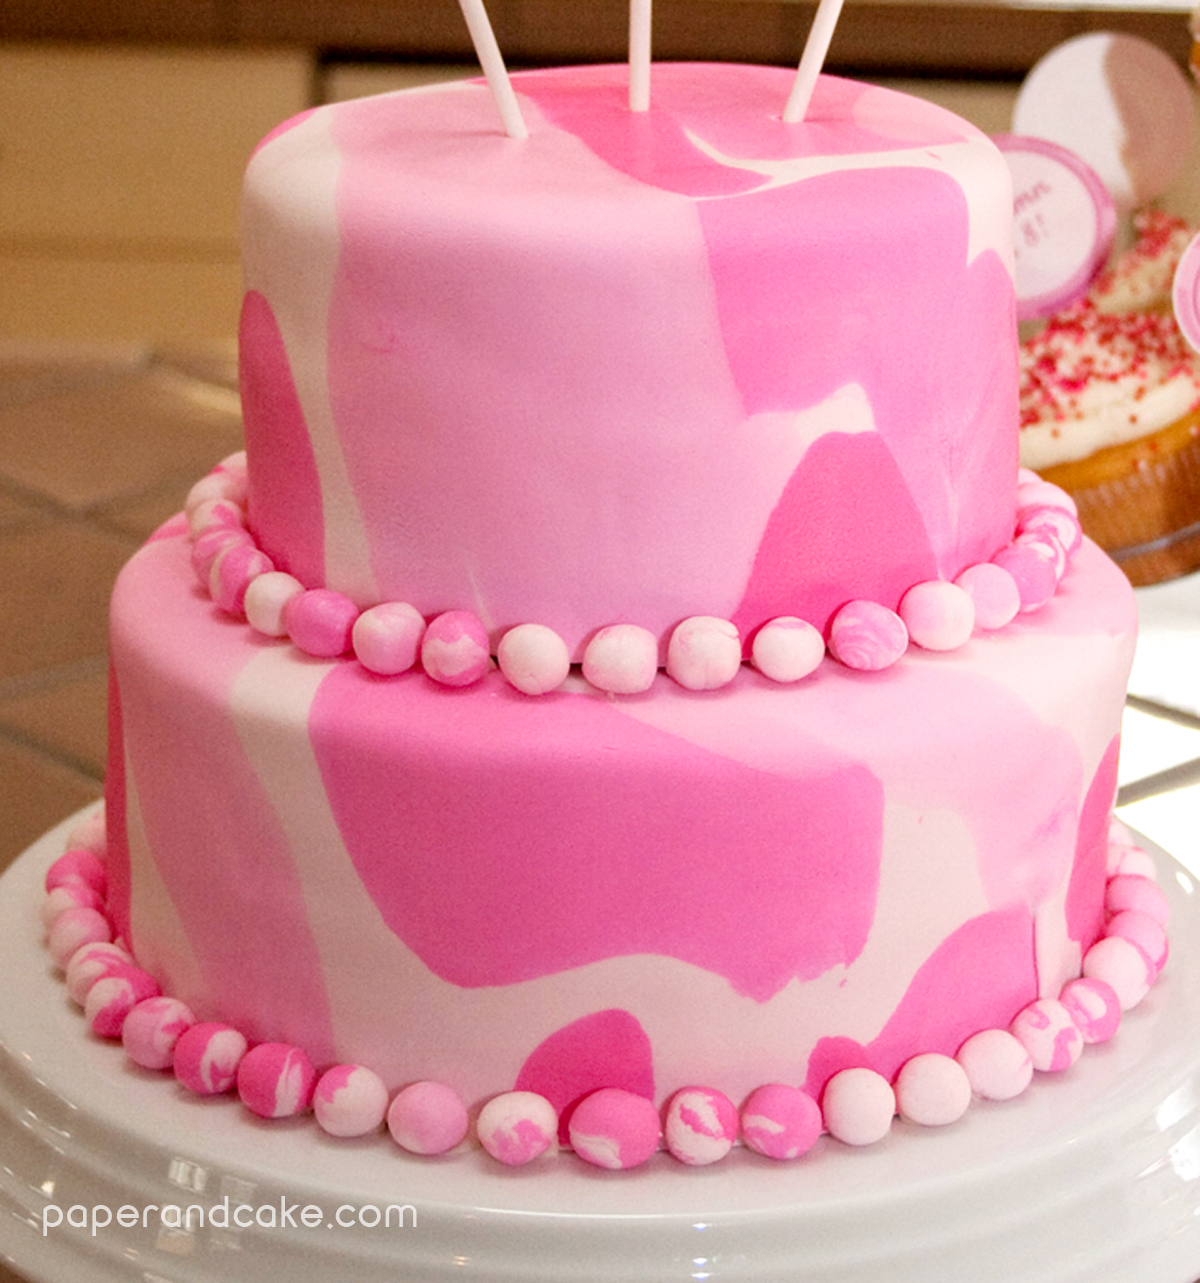 P&C Real Life Party: Pink Camouflage - Paper and Cake Paper and Cake